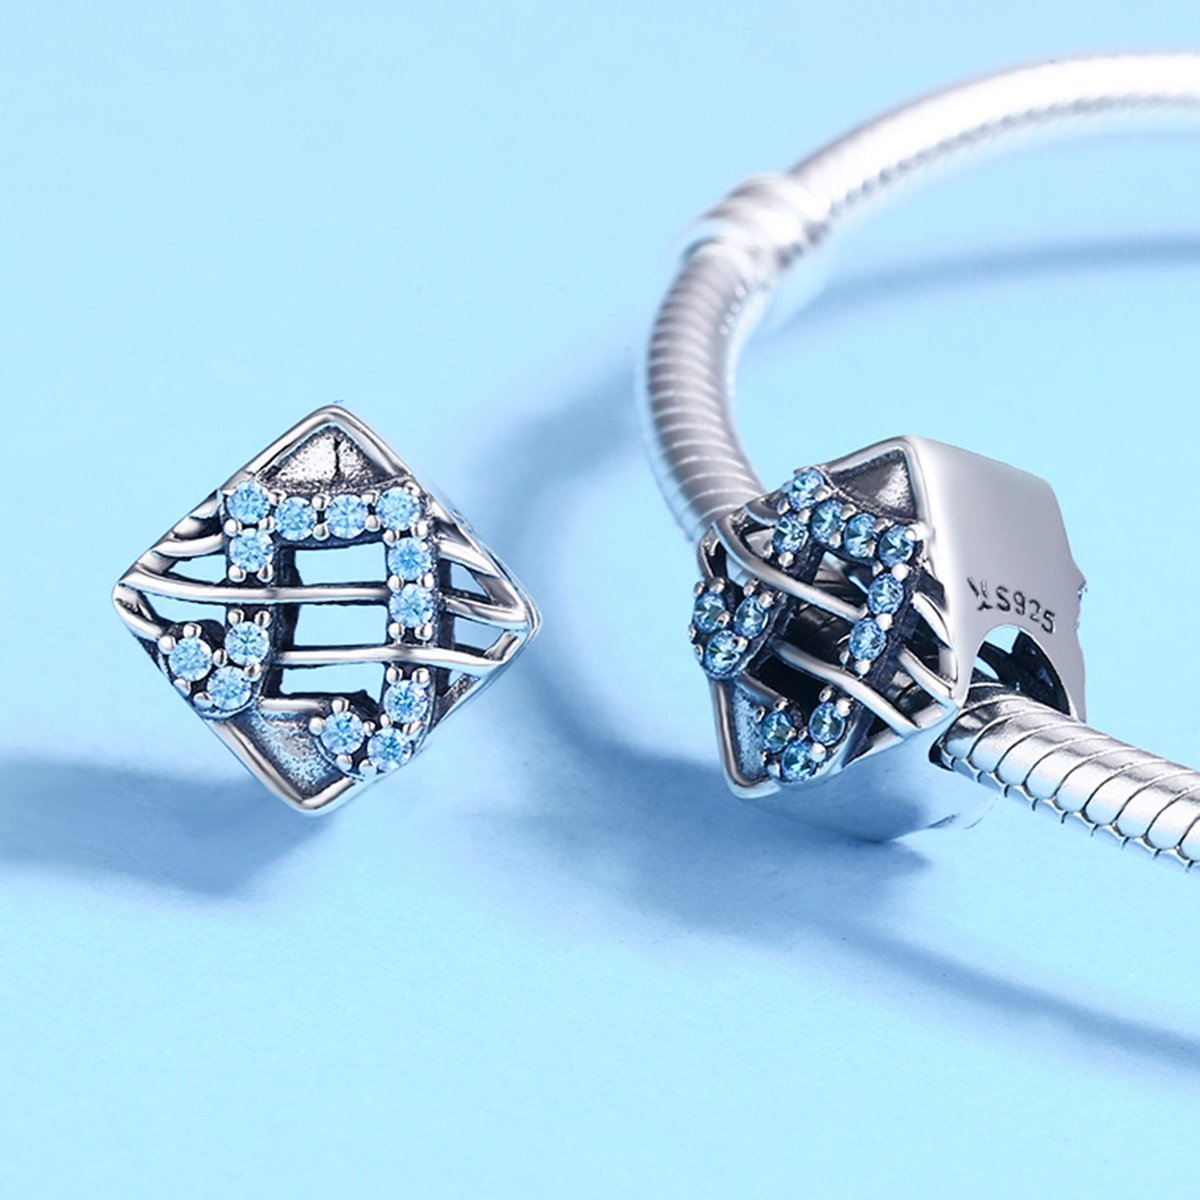 Soulove Music Dynamic Notes Square Bead 925 Sterling Silver Bead For Snake Chain Charm Bracelet